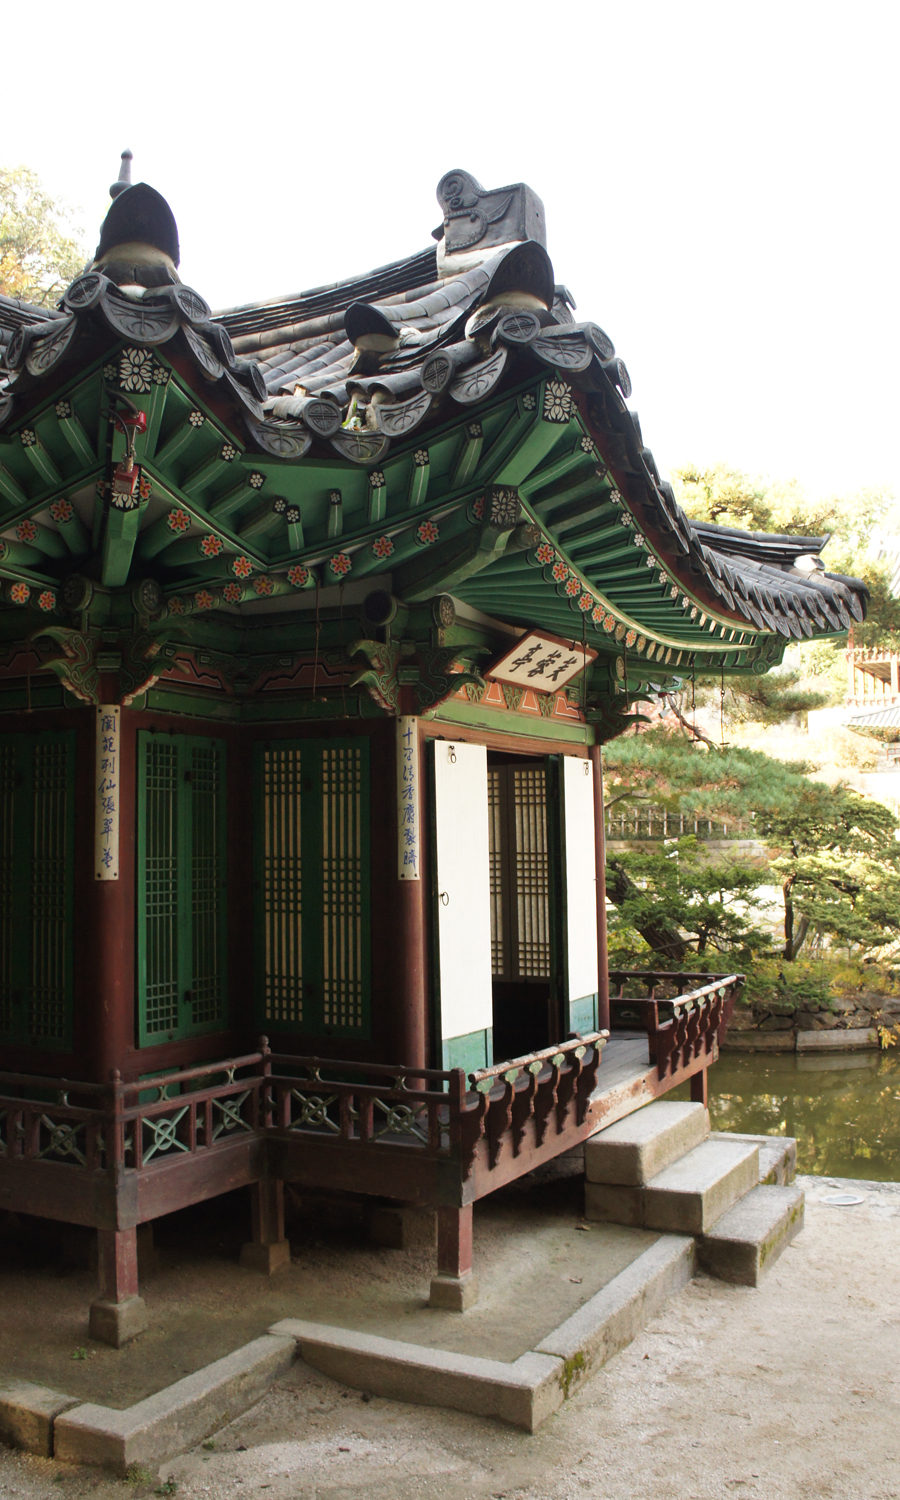 2014-seoul-korea-changdeokgung-palace-secret-garden-biwon-12